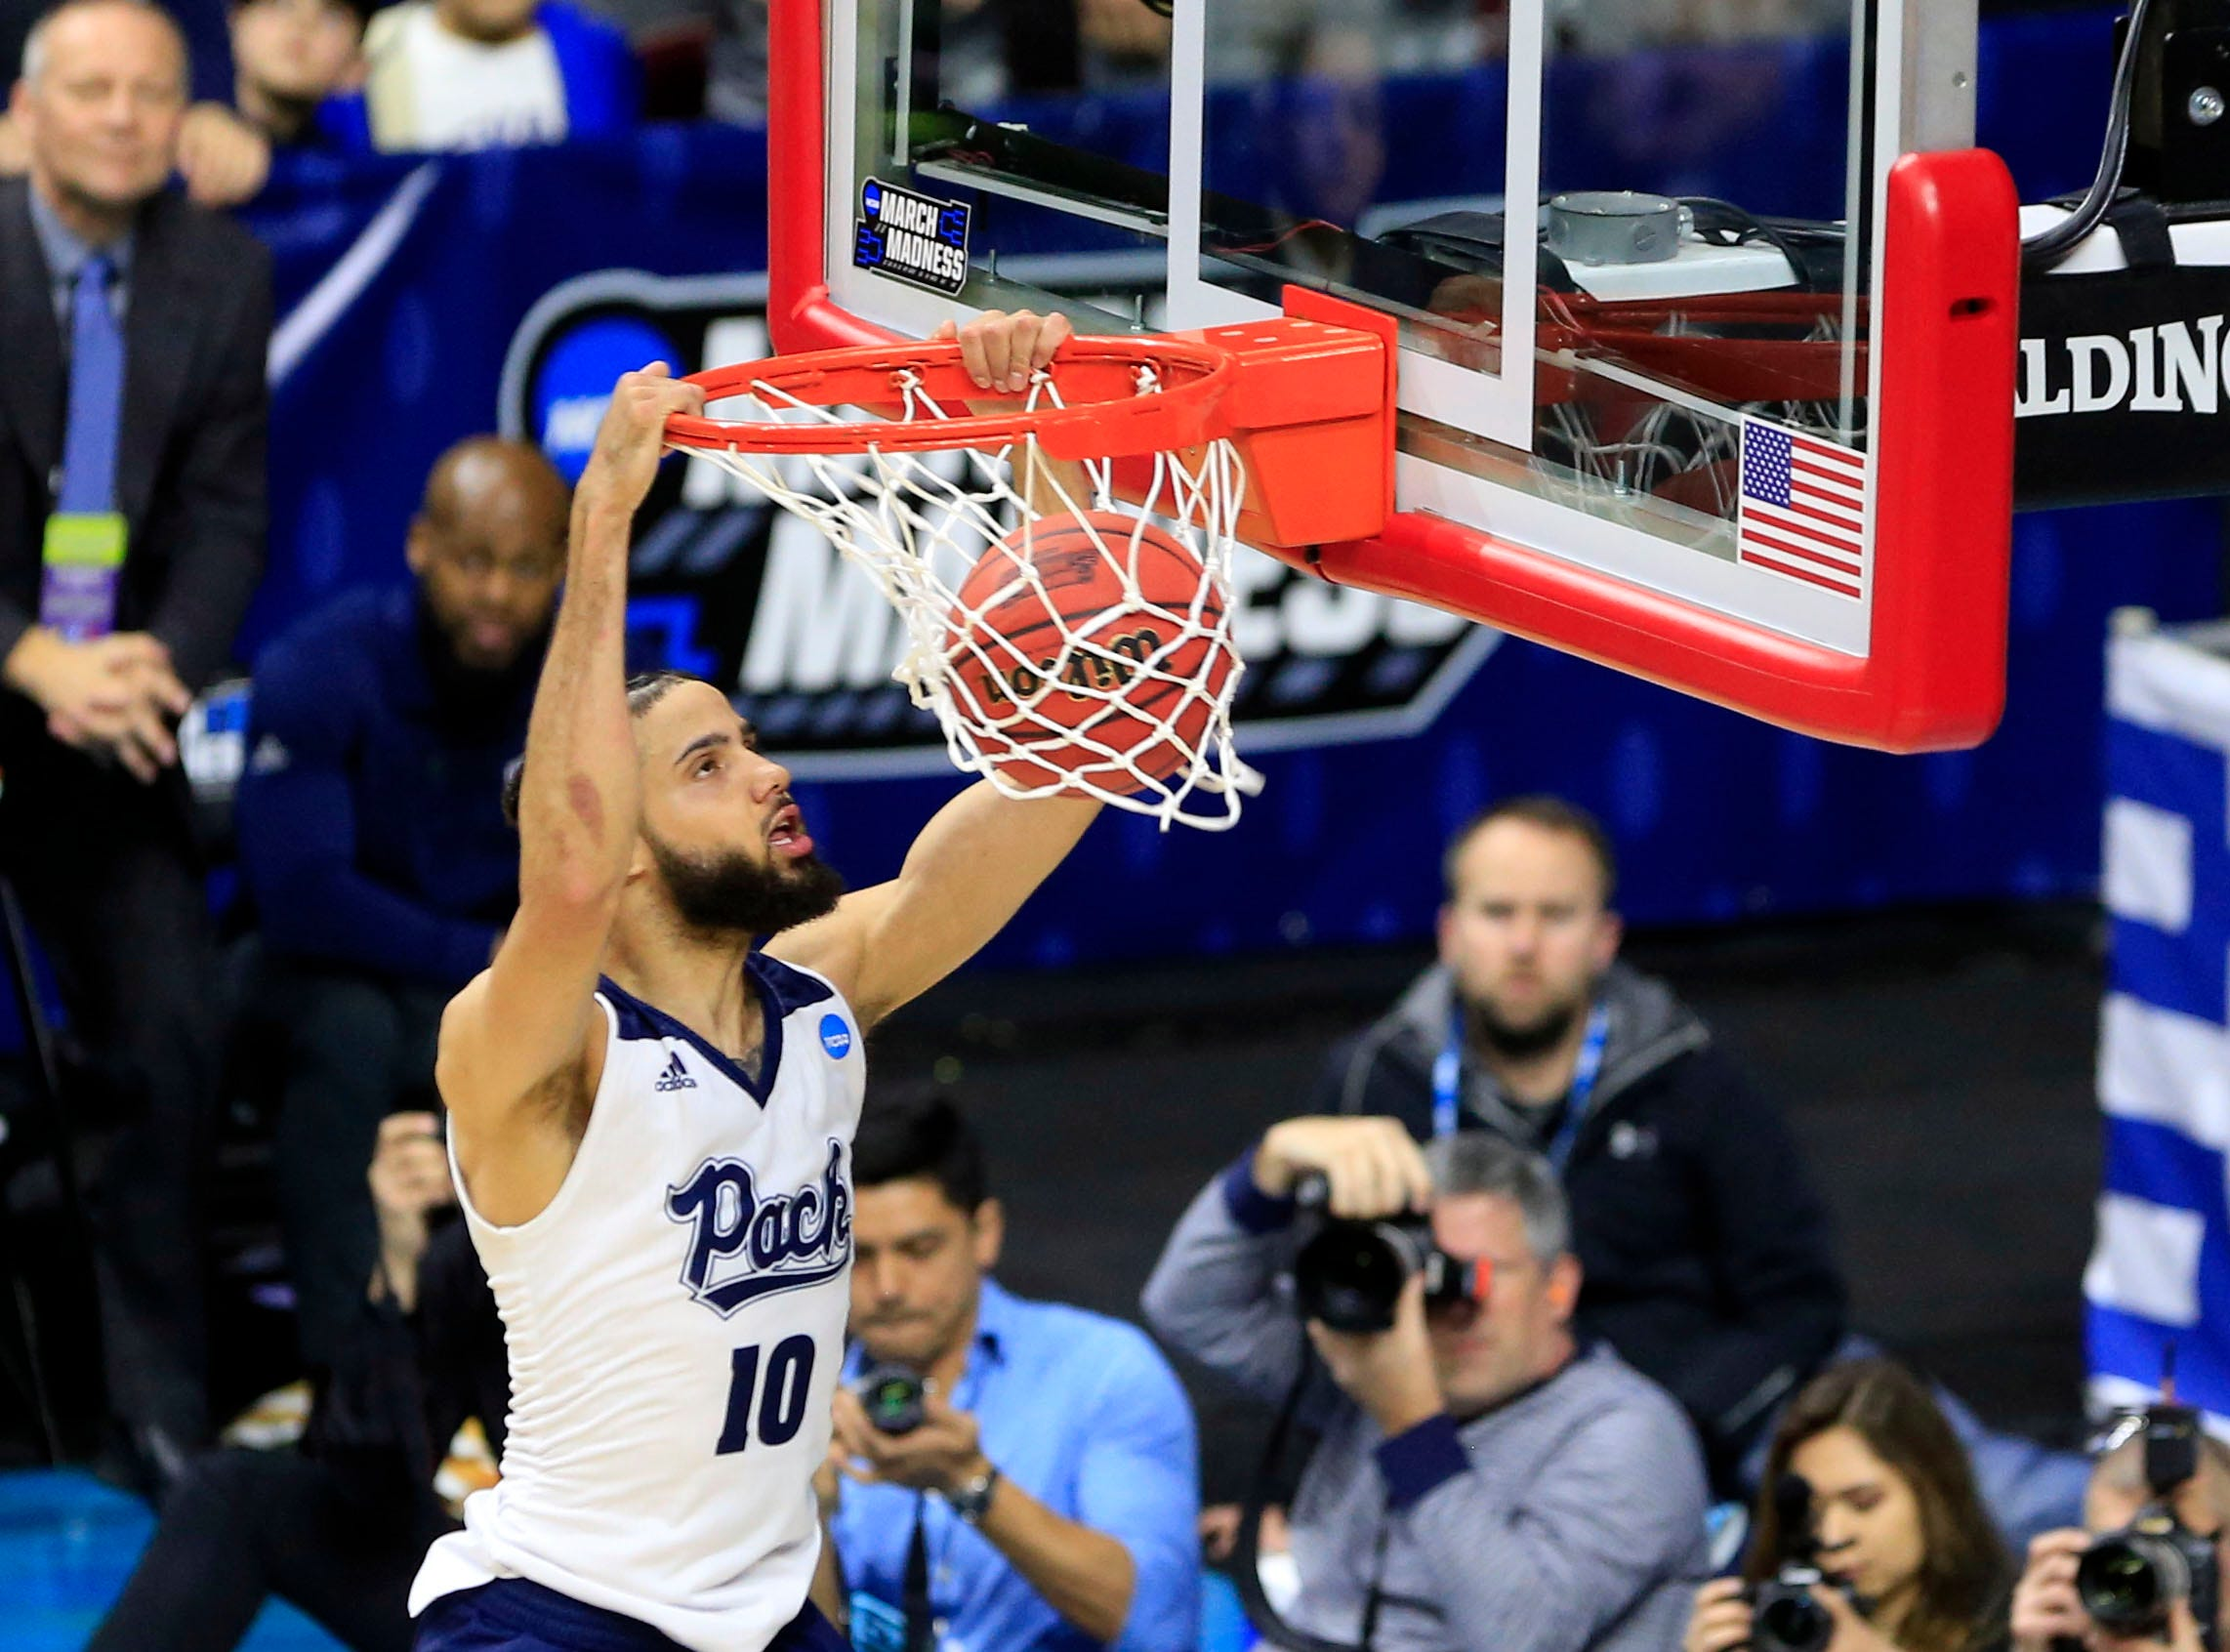 Nevada forward Caleb Martin dunks during their NCAA Division I Men's Basketball Championship First Round game against Florida on Thursday, March 21, 2019 in Des Moines.